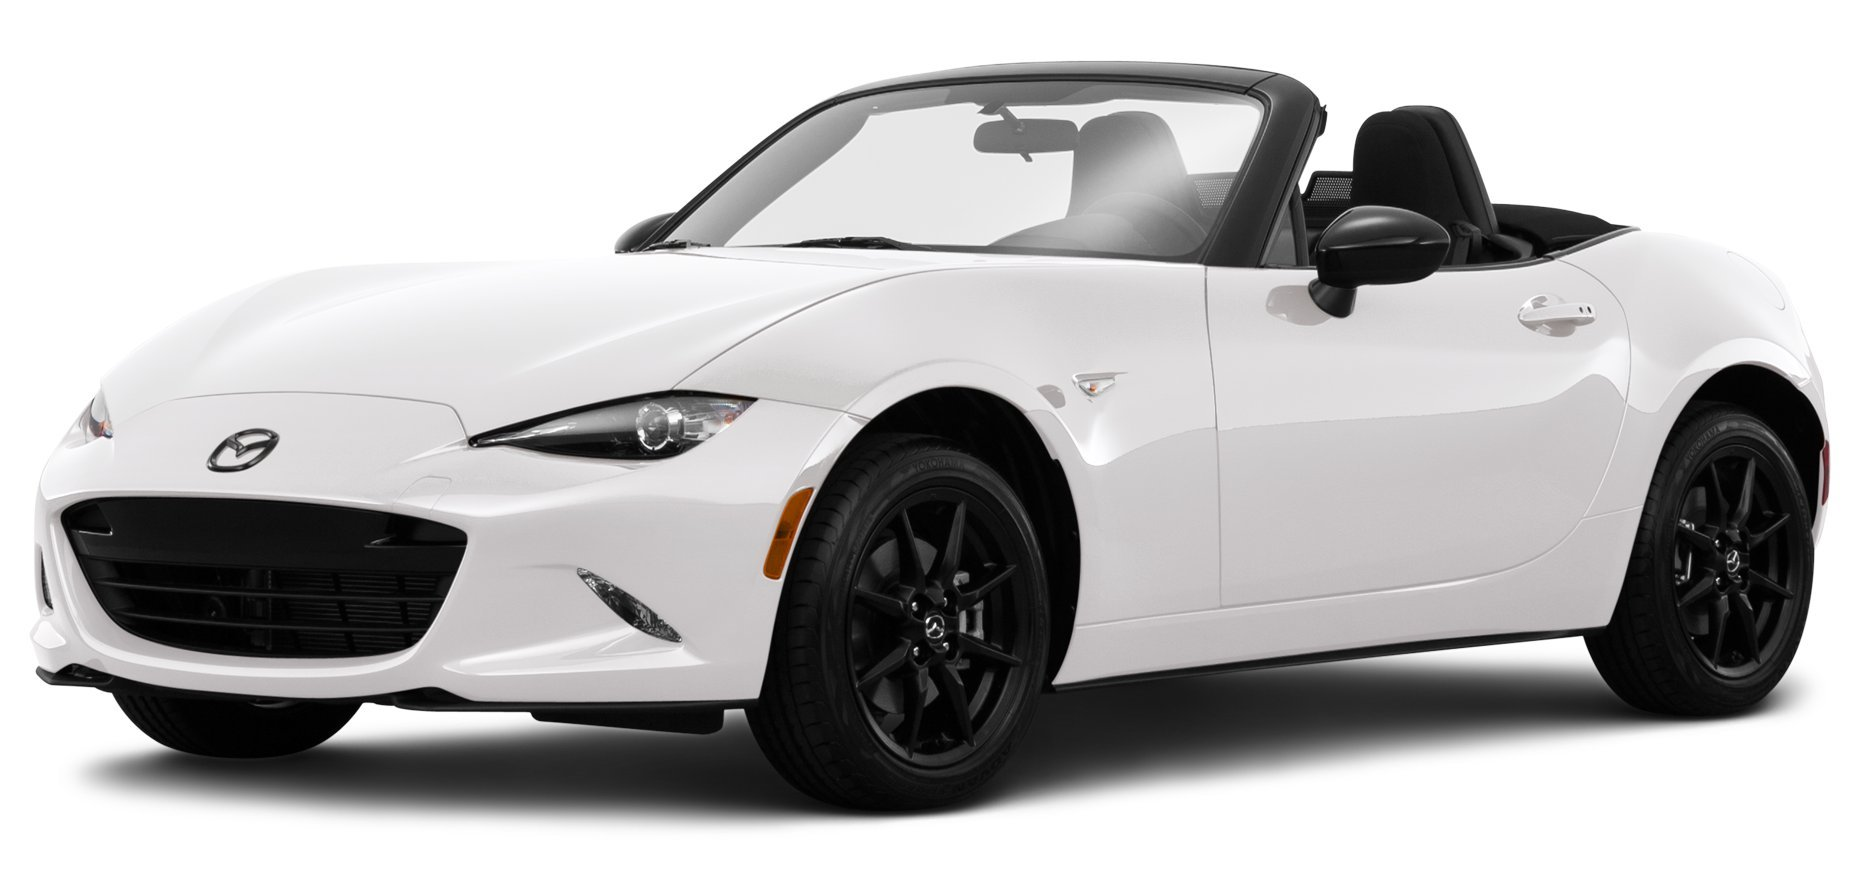 Charmant 2016 Mazda MX 5 Miata Club, 2 Door Convertible Automatic Transmission ...